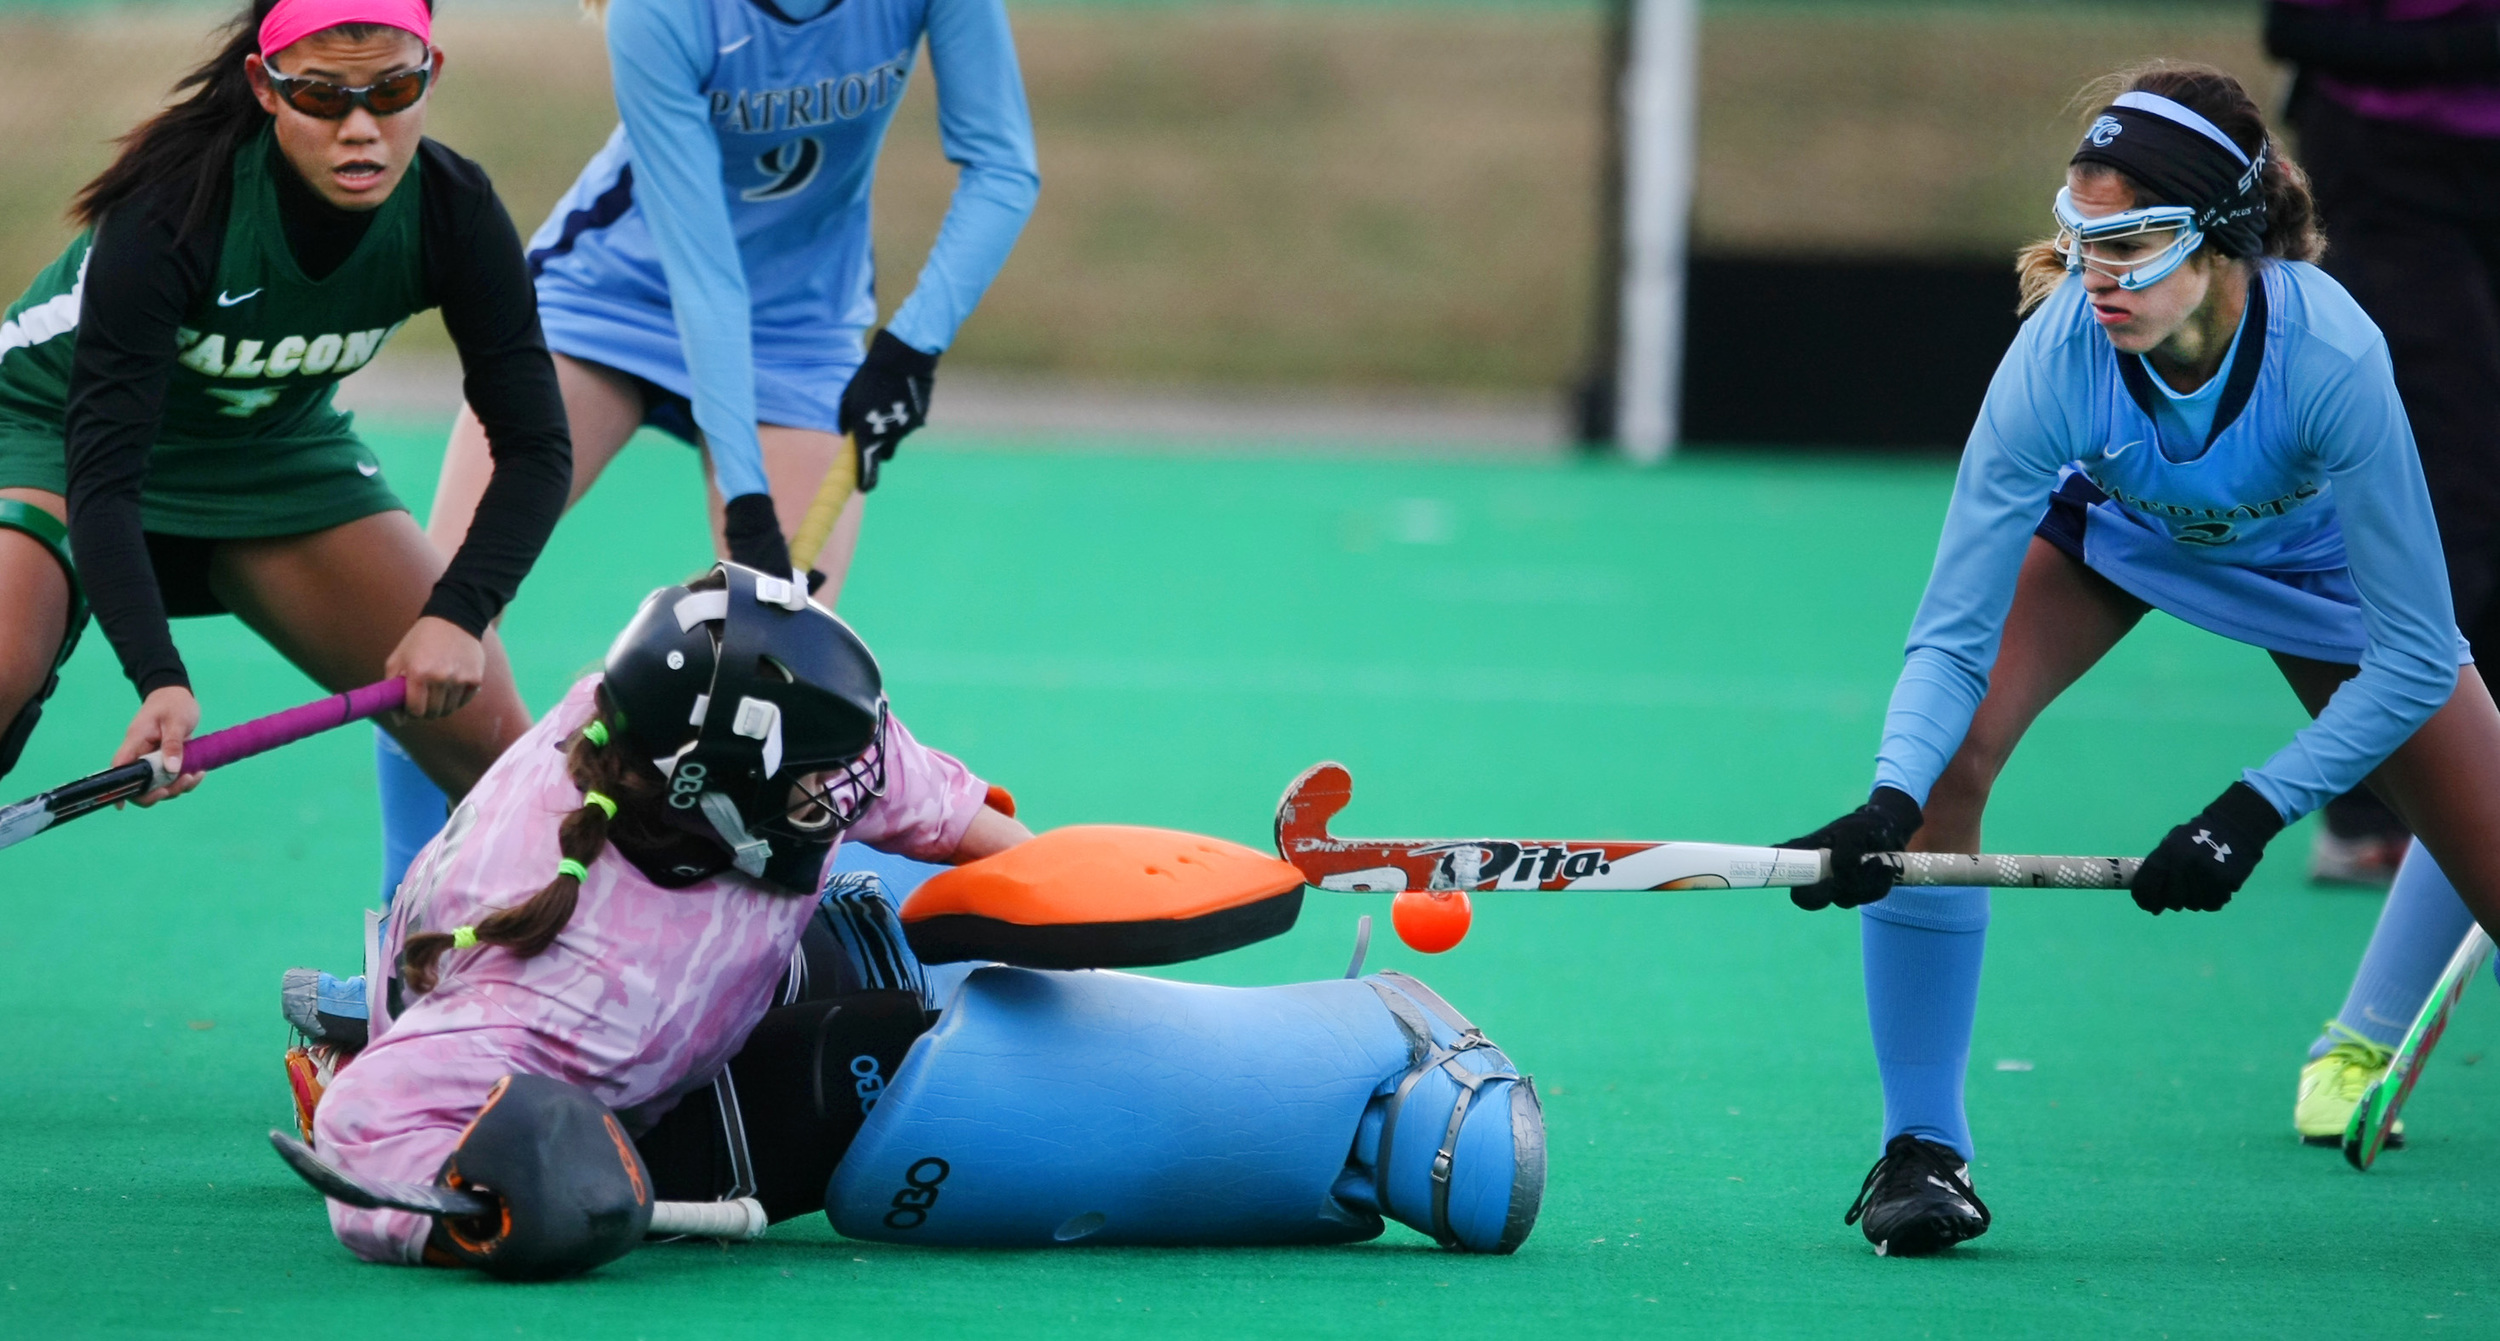 Cox goalkeeper Suzie Pileckas stops a shot by First Colonial's Izzy Fontana, right, during second half action of Cox's 1-0 win to claim their 18th State title, Saturday, Nov. 16, 2014 at the National Training Center in Virginia Beach.     (Jason Hirschfeld | For The Virginian-Pilot)